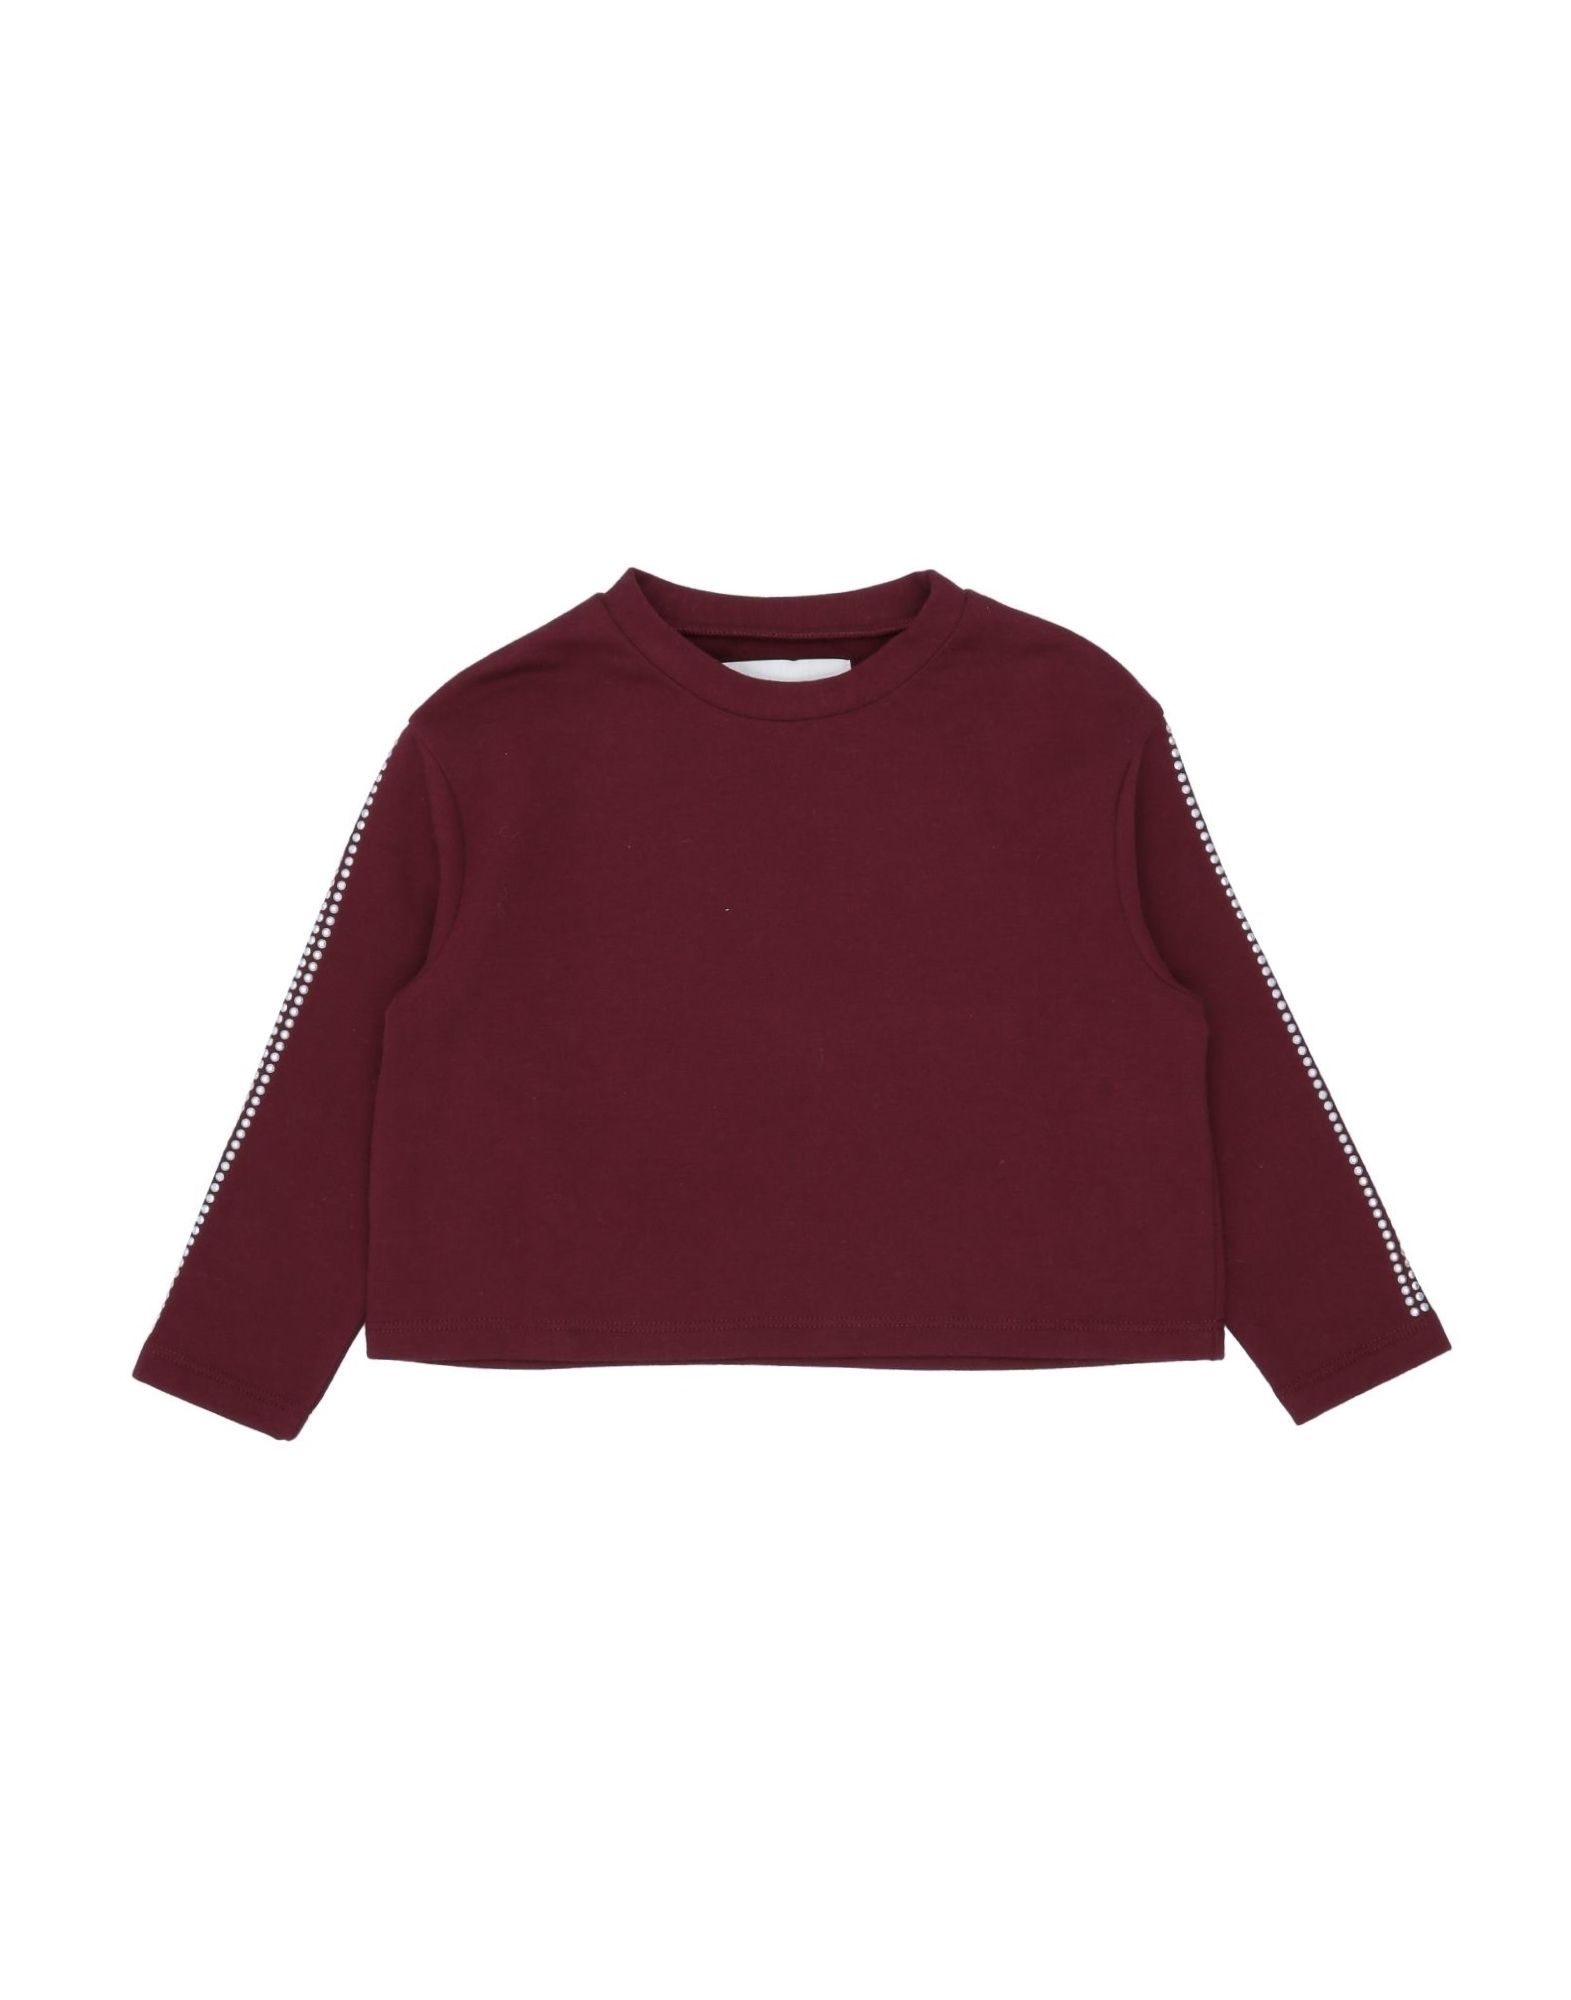 Touriste Kids' T-shirts In Maroon